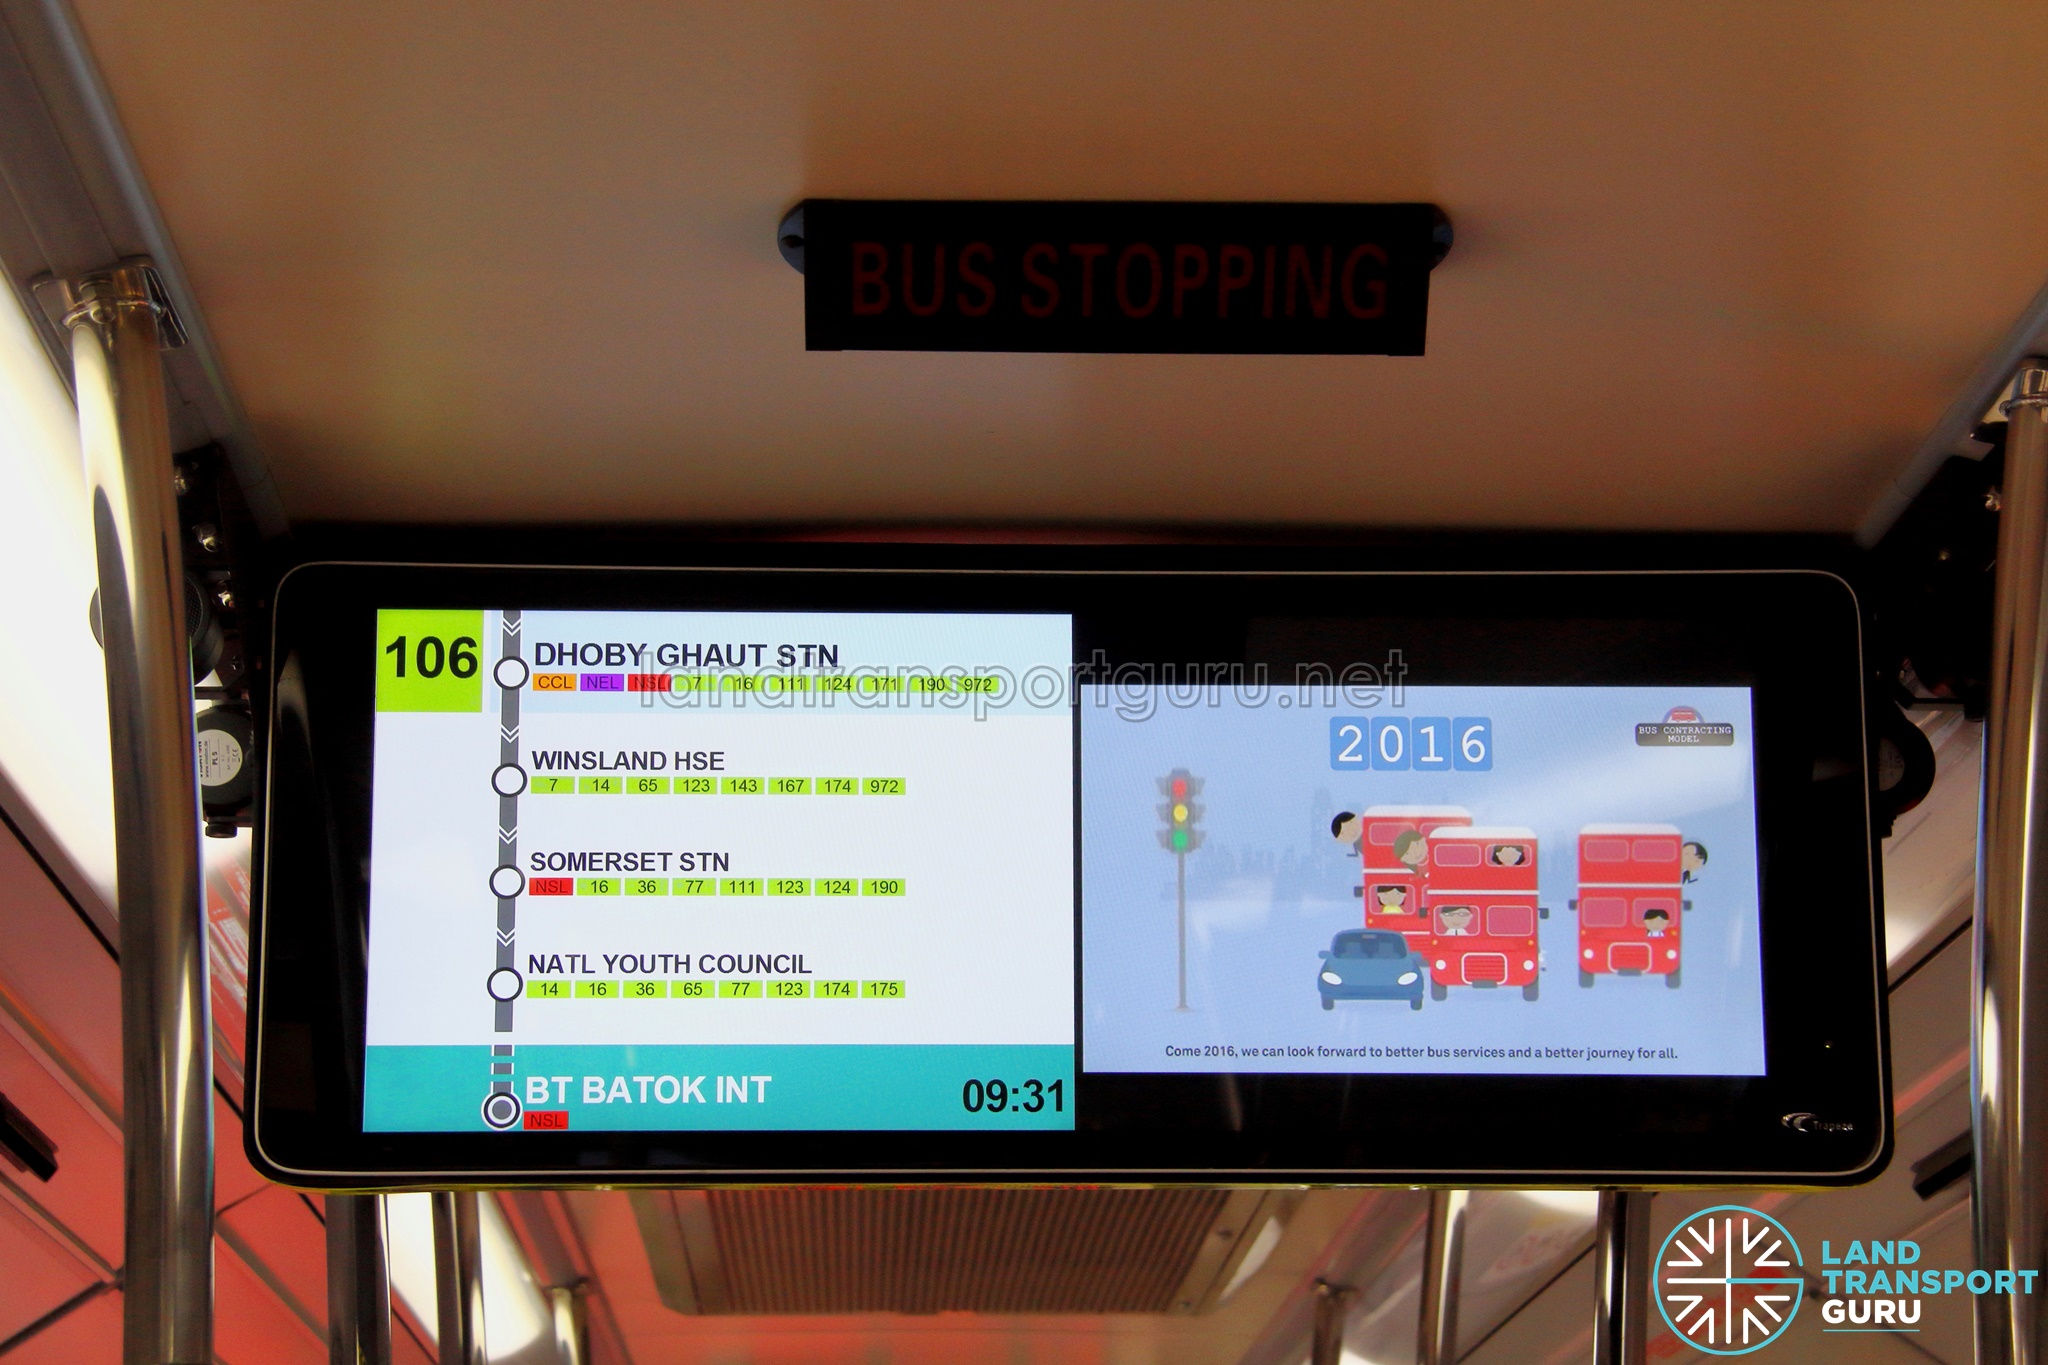 Lta Trials New Information Display For Buses Land